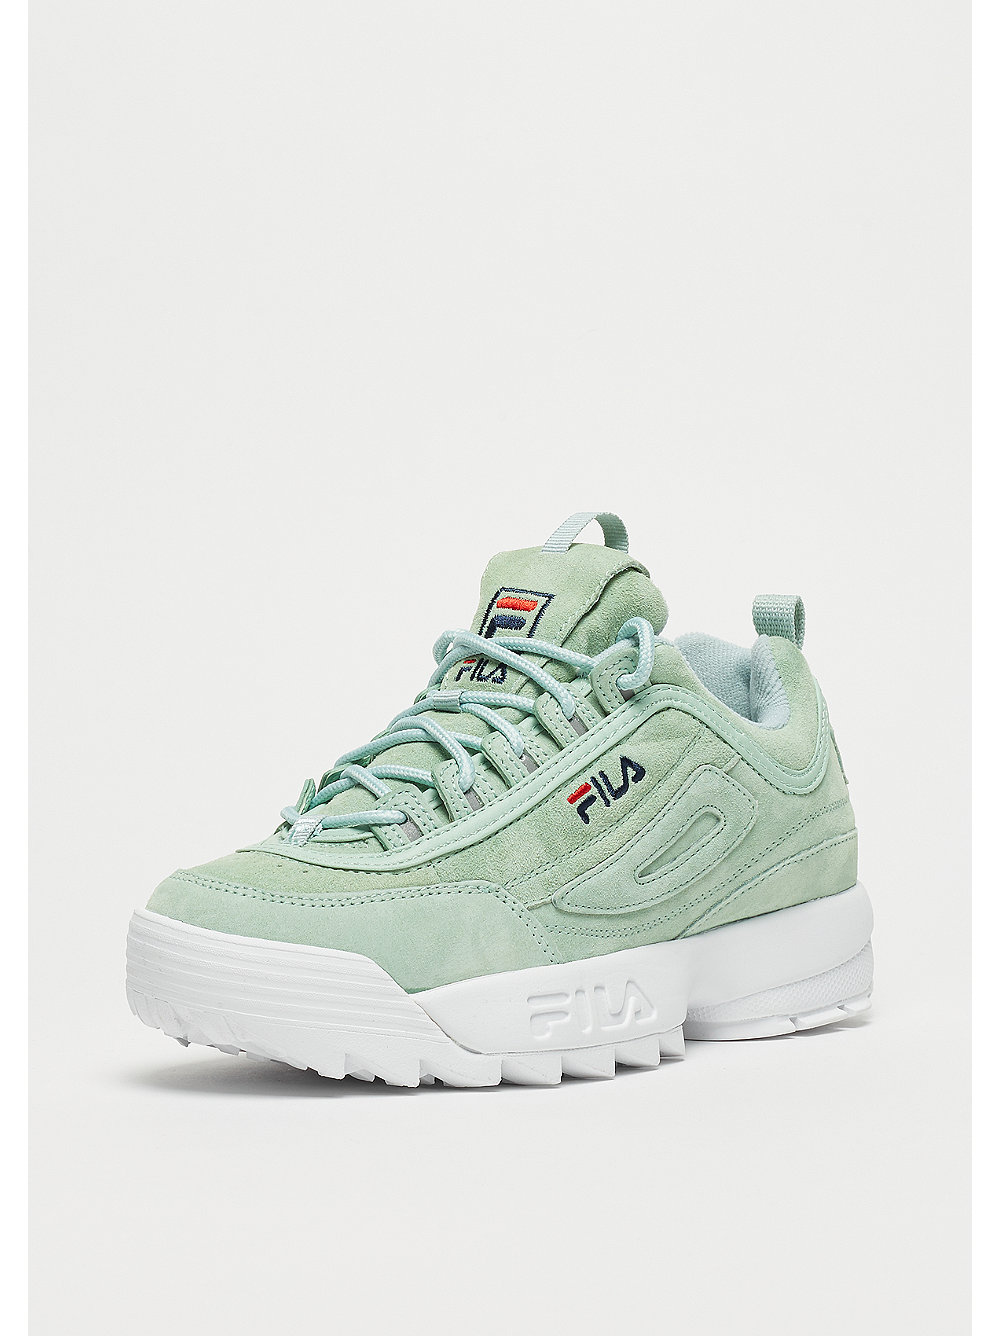 Pastel Heritage S Disruptor Commander Fila Low Wmn Turquoise Chez Snipes qRY1qOax